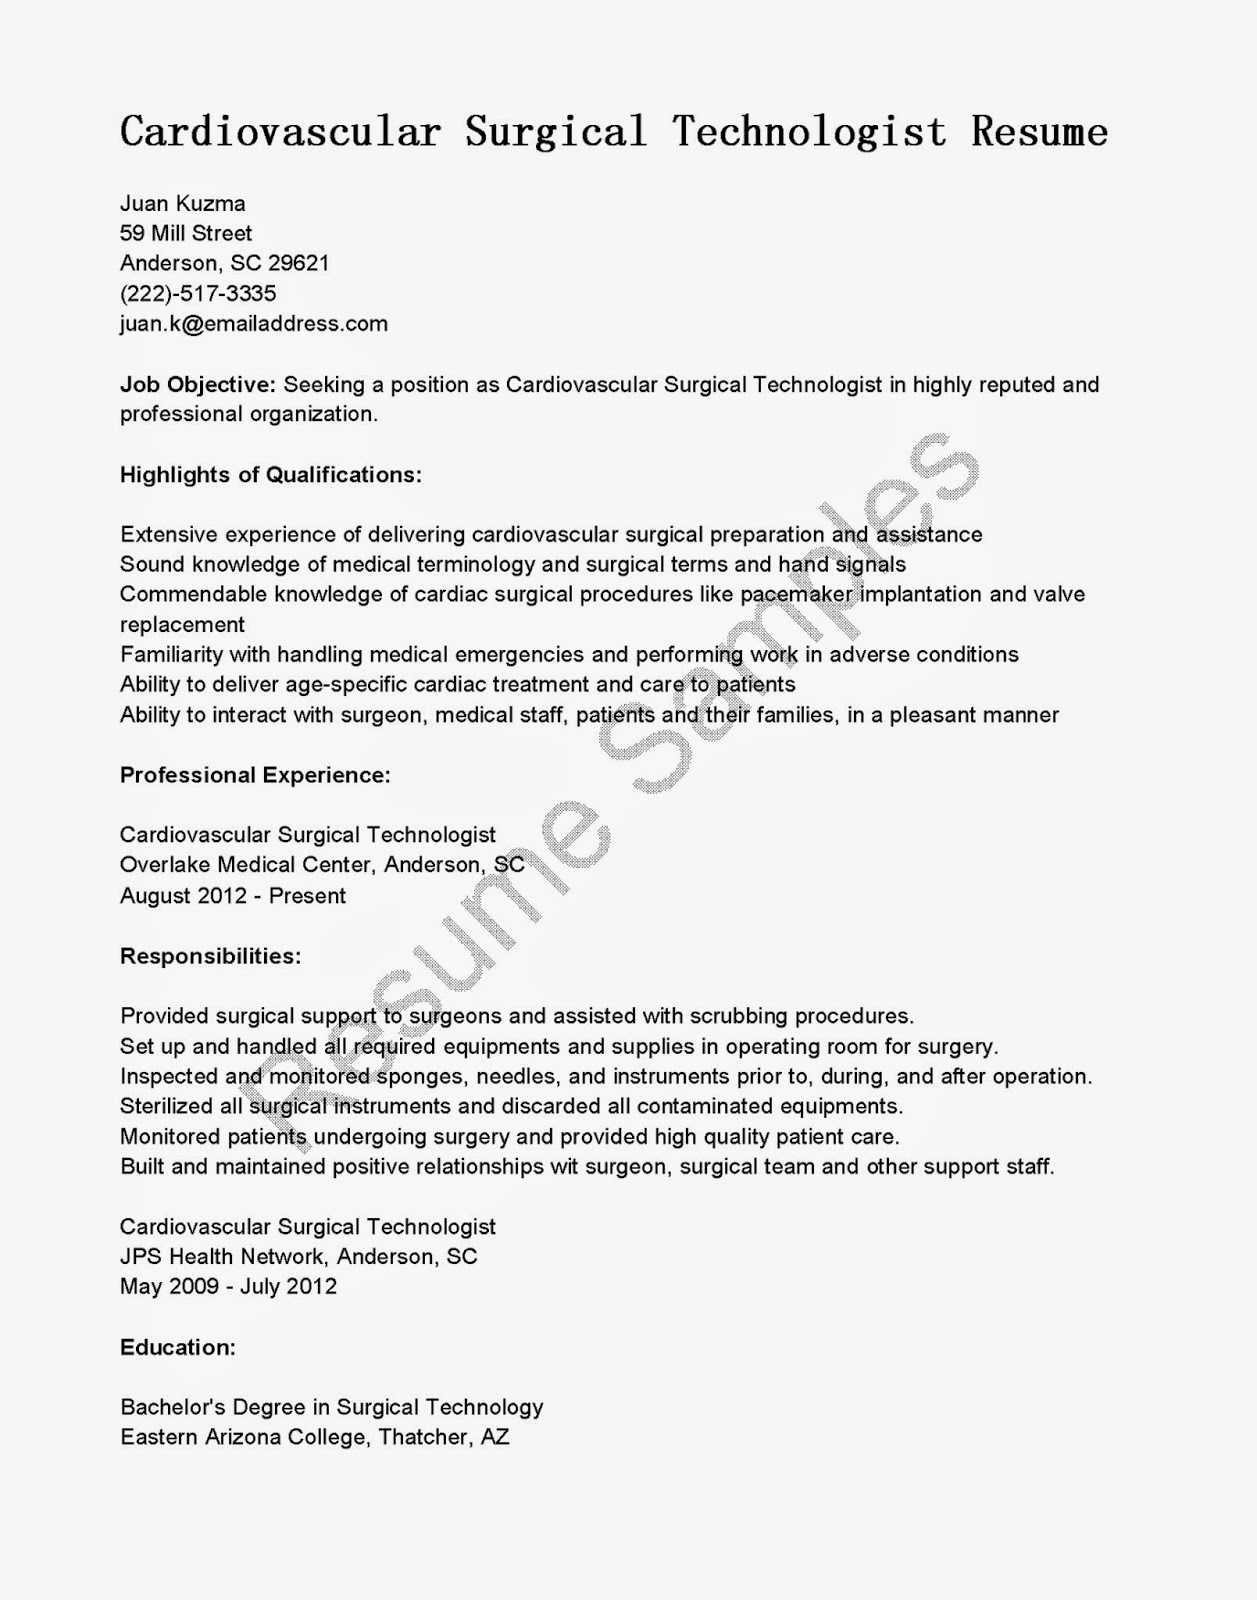 surgical tech resume samples pin surgical tech resume examples image search results pinterest yolande kennedy scenic hwy lpensacola - Surgical Tech Resume Samples